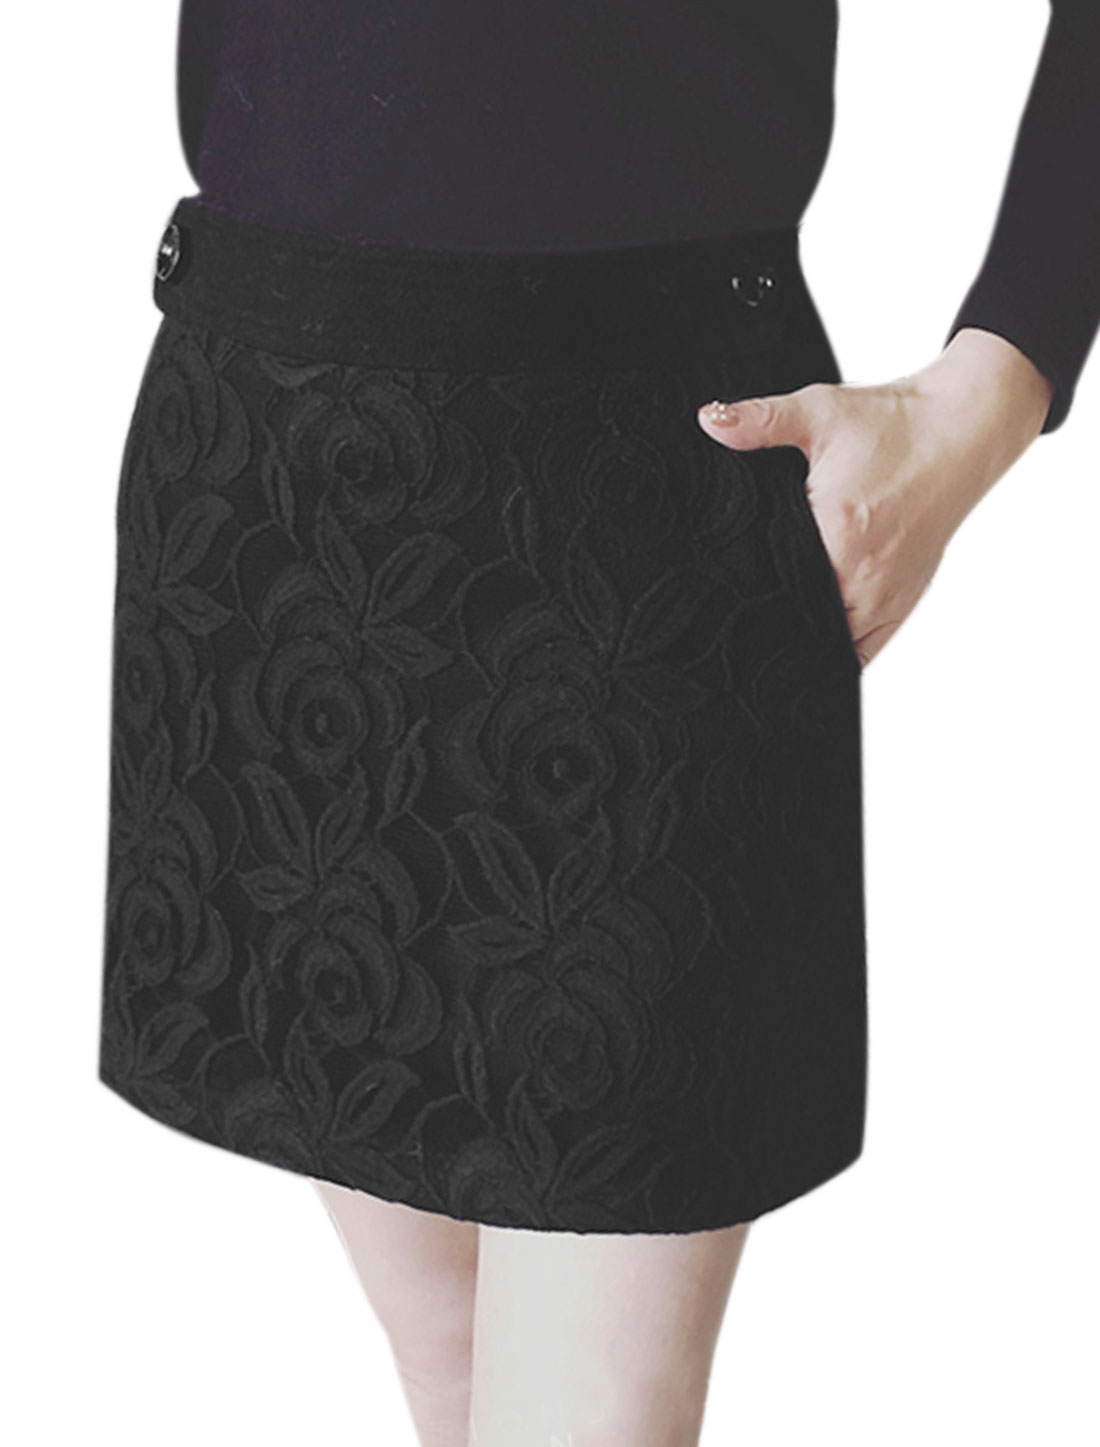 Women High Waist Floral Lace Worsted Straight Skirt Black M